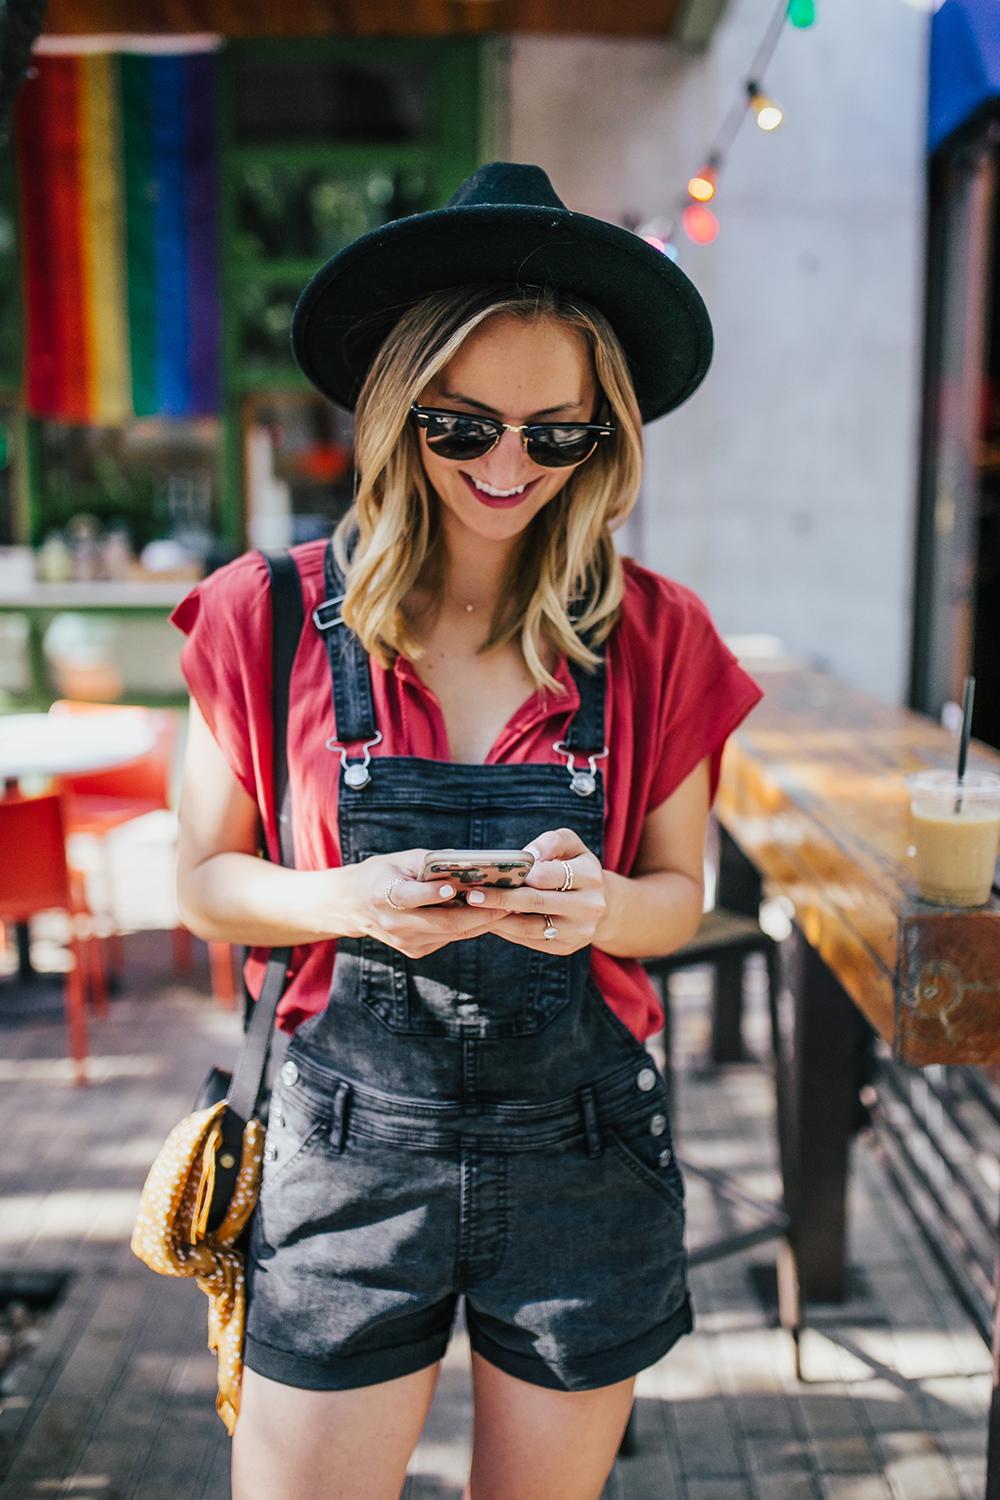 livvyland-blog-olivia-watson-black-short-overalls-abercrombie-everlane-black-pointed-toe-flats-summer-outfit-jos-coffee-second-street-austin-texas-fashion-blogger-3